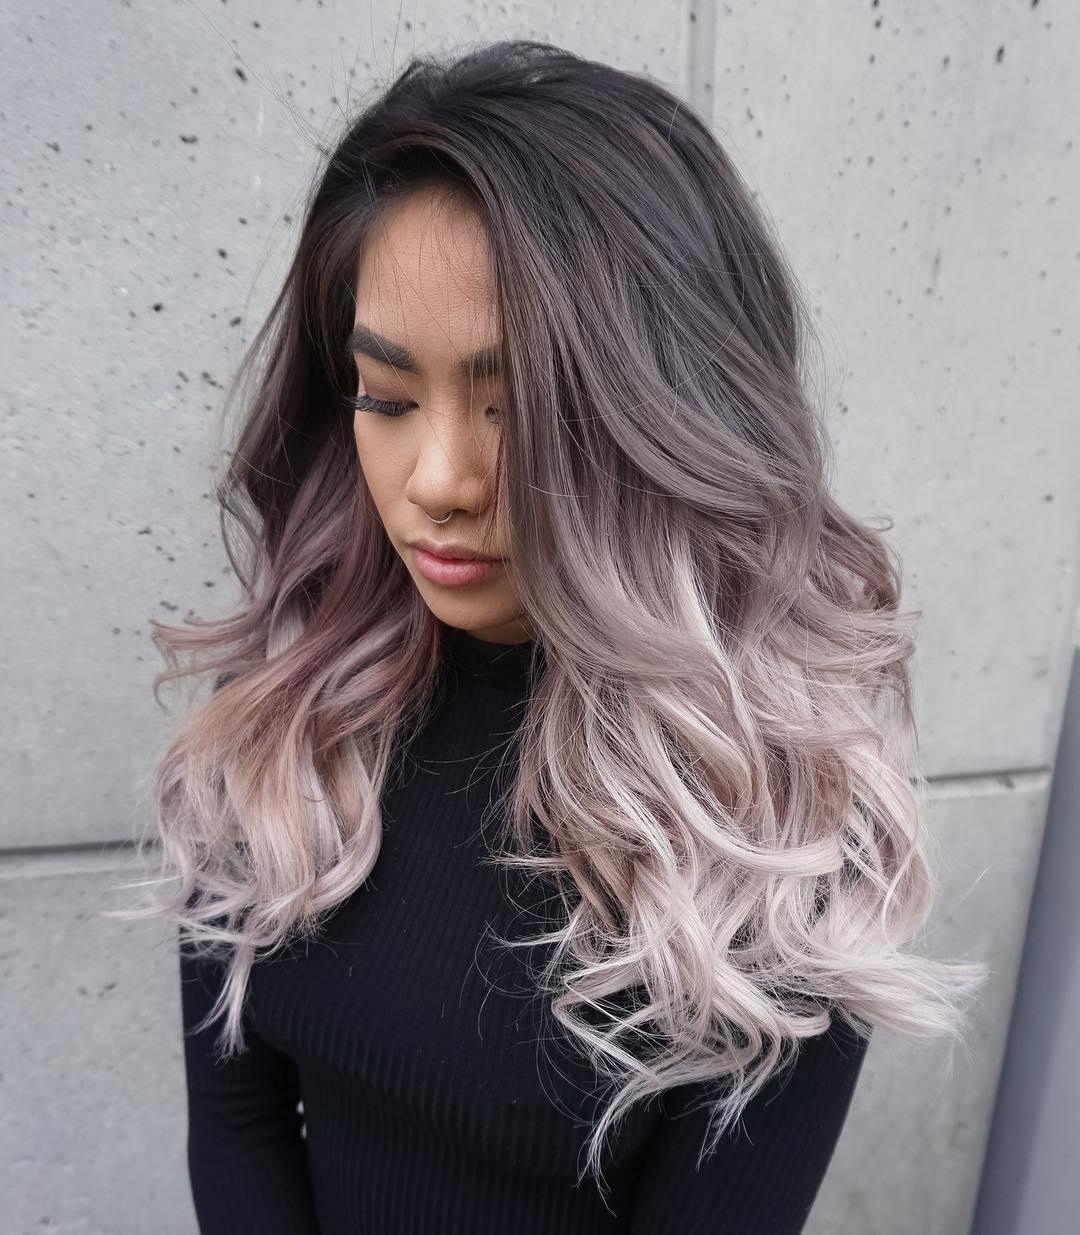 hairstyle trend Asian